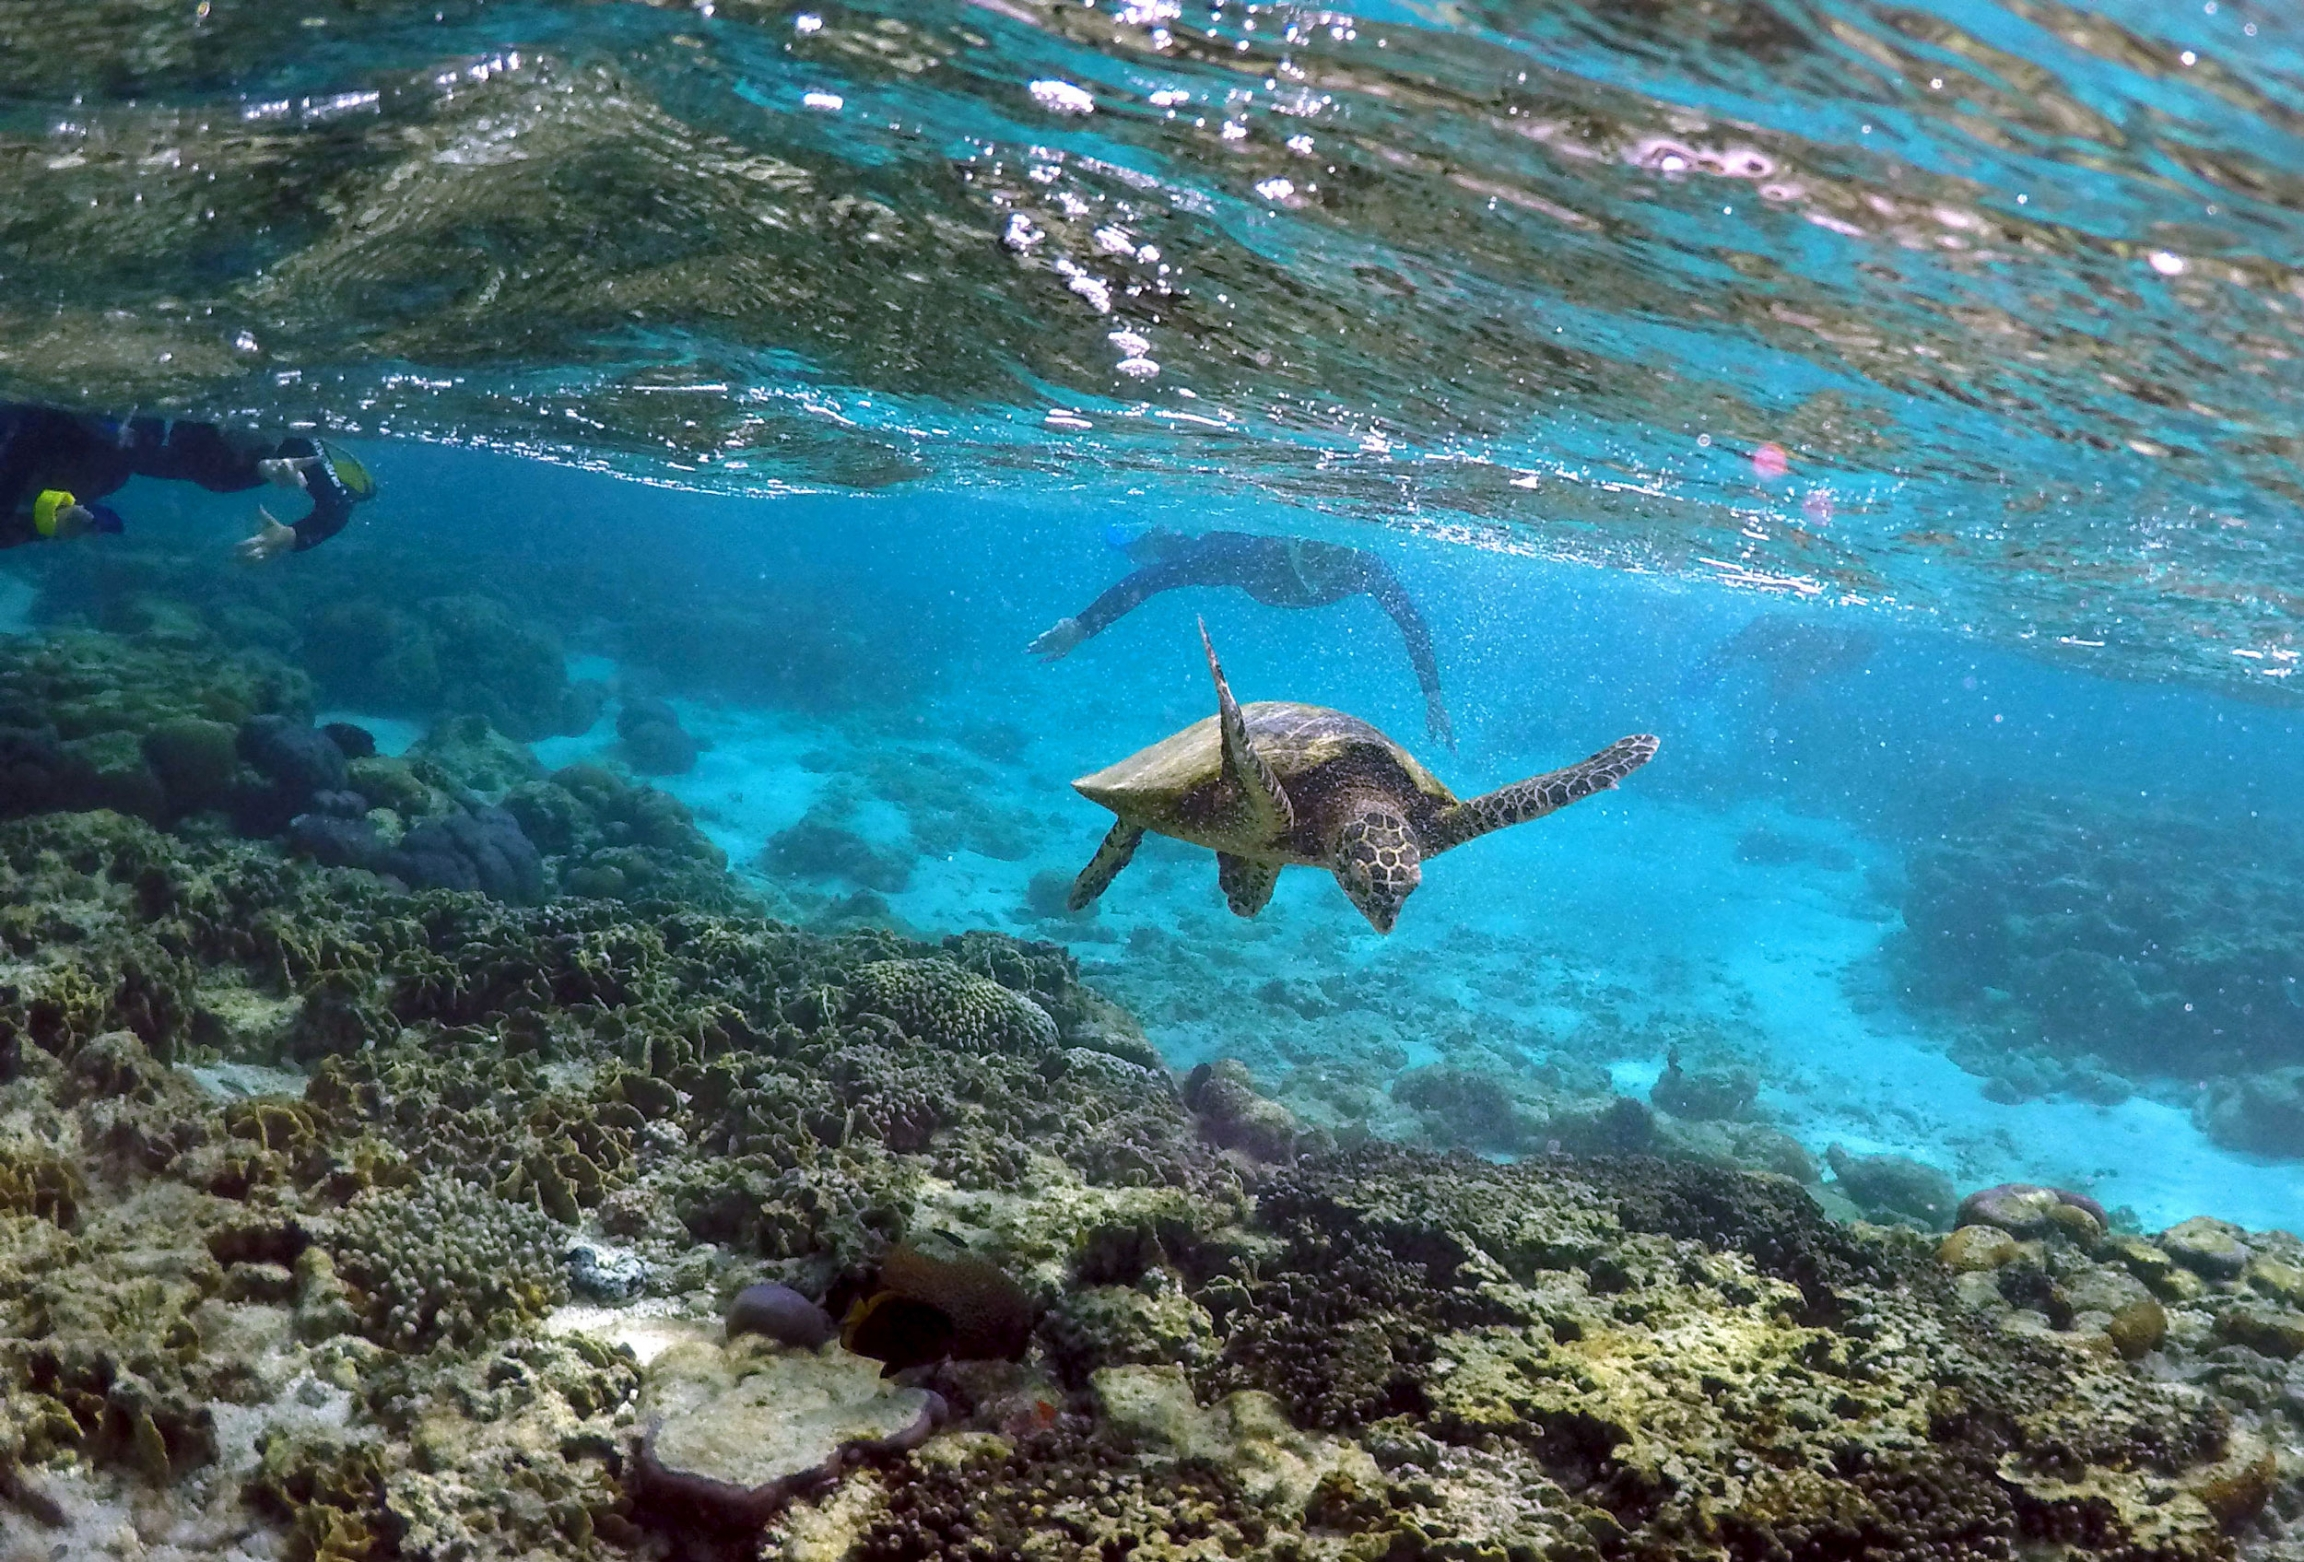 Tourists snorkel near a sea turtle as it looks for food amongst the coral.